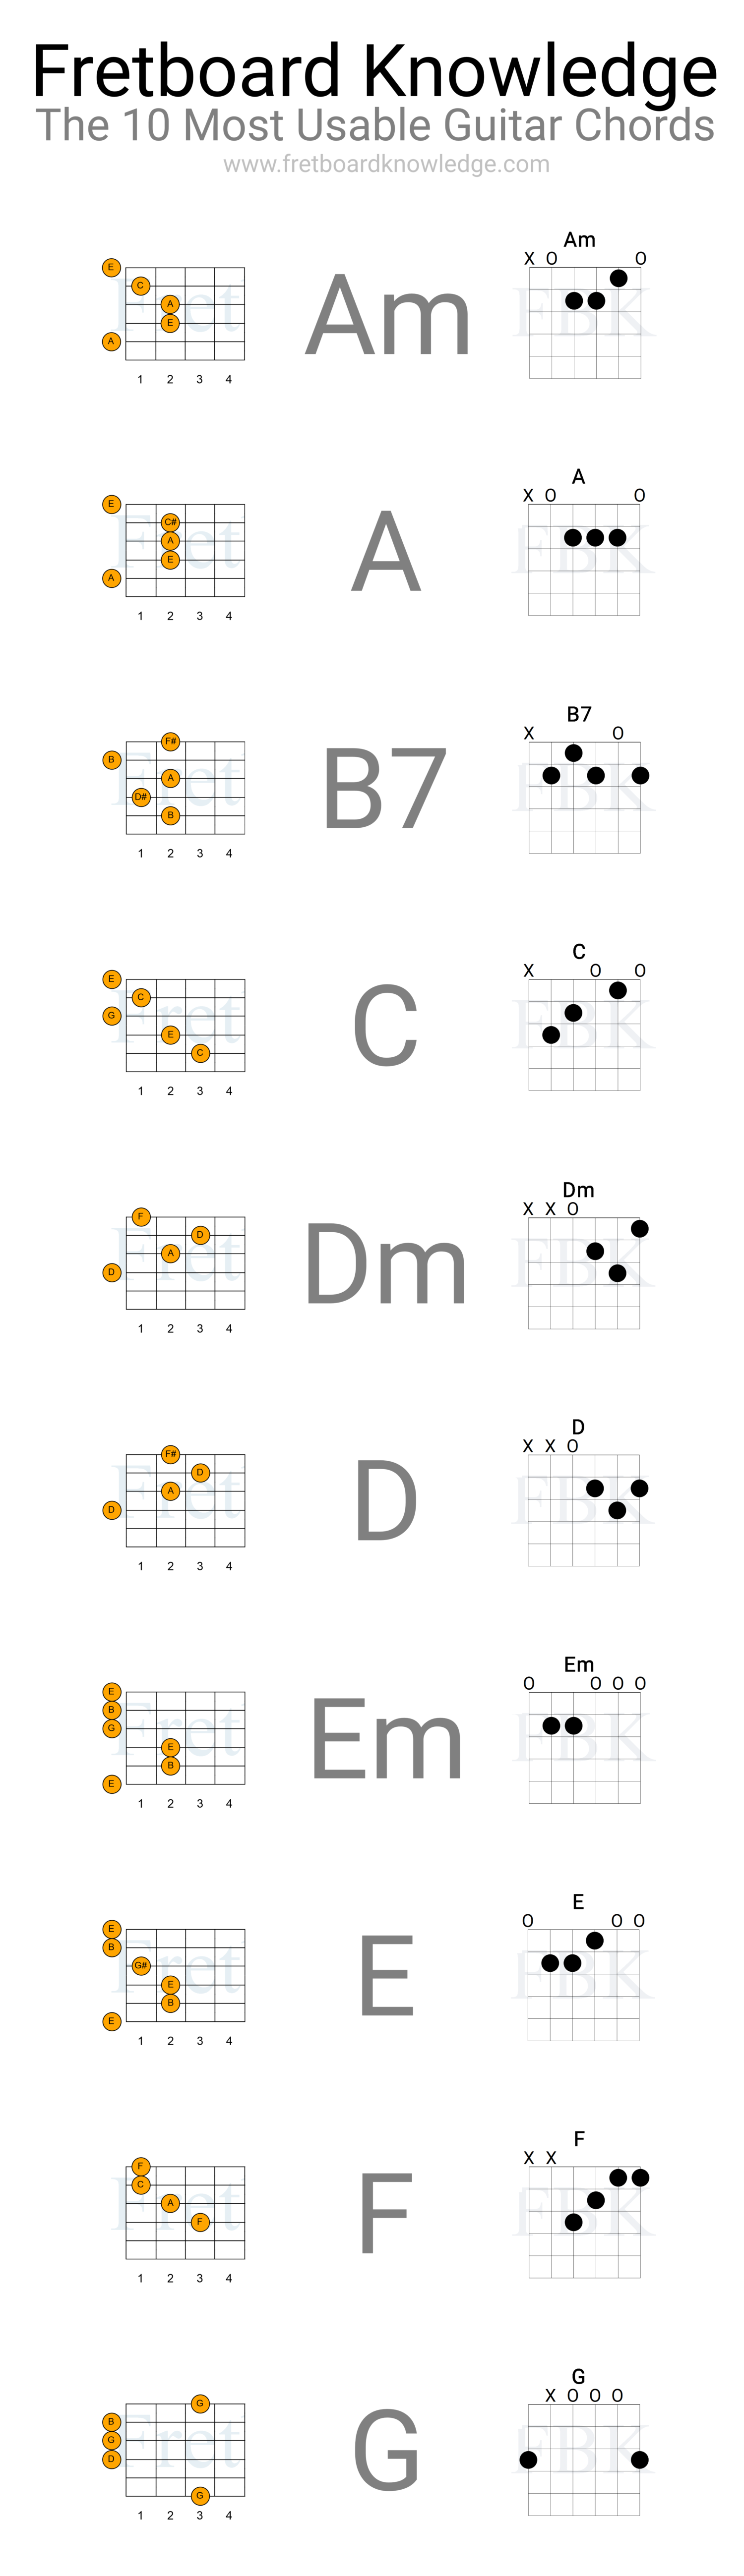 B7 Guitar Chord Archives Guitar Fretboard Knowledge